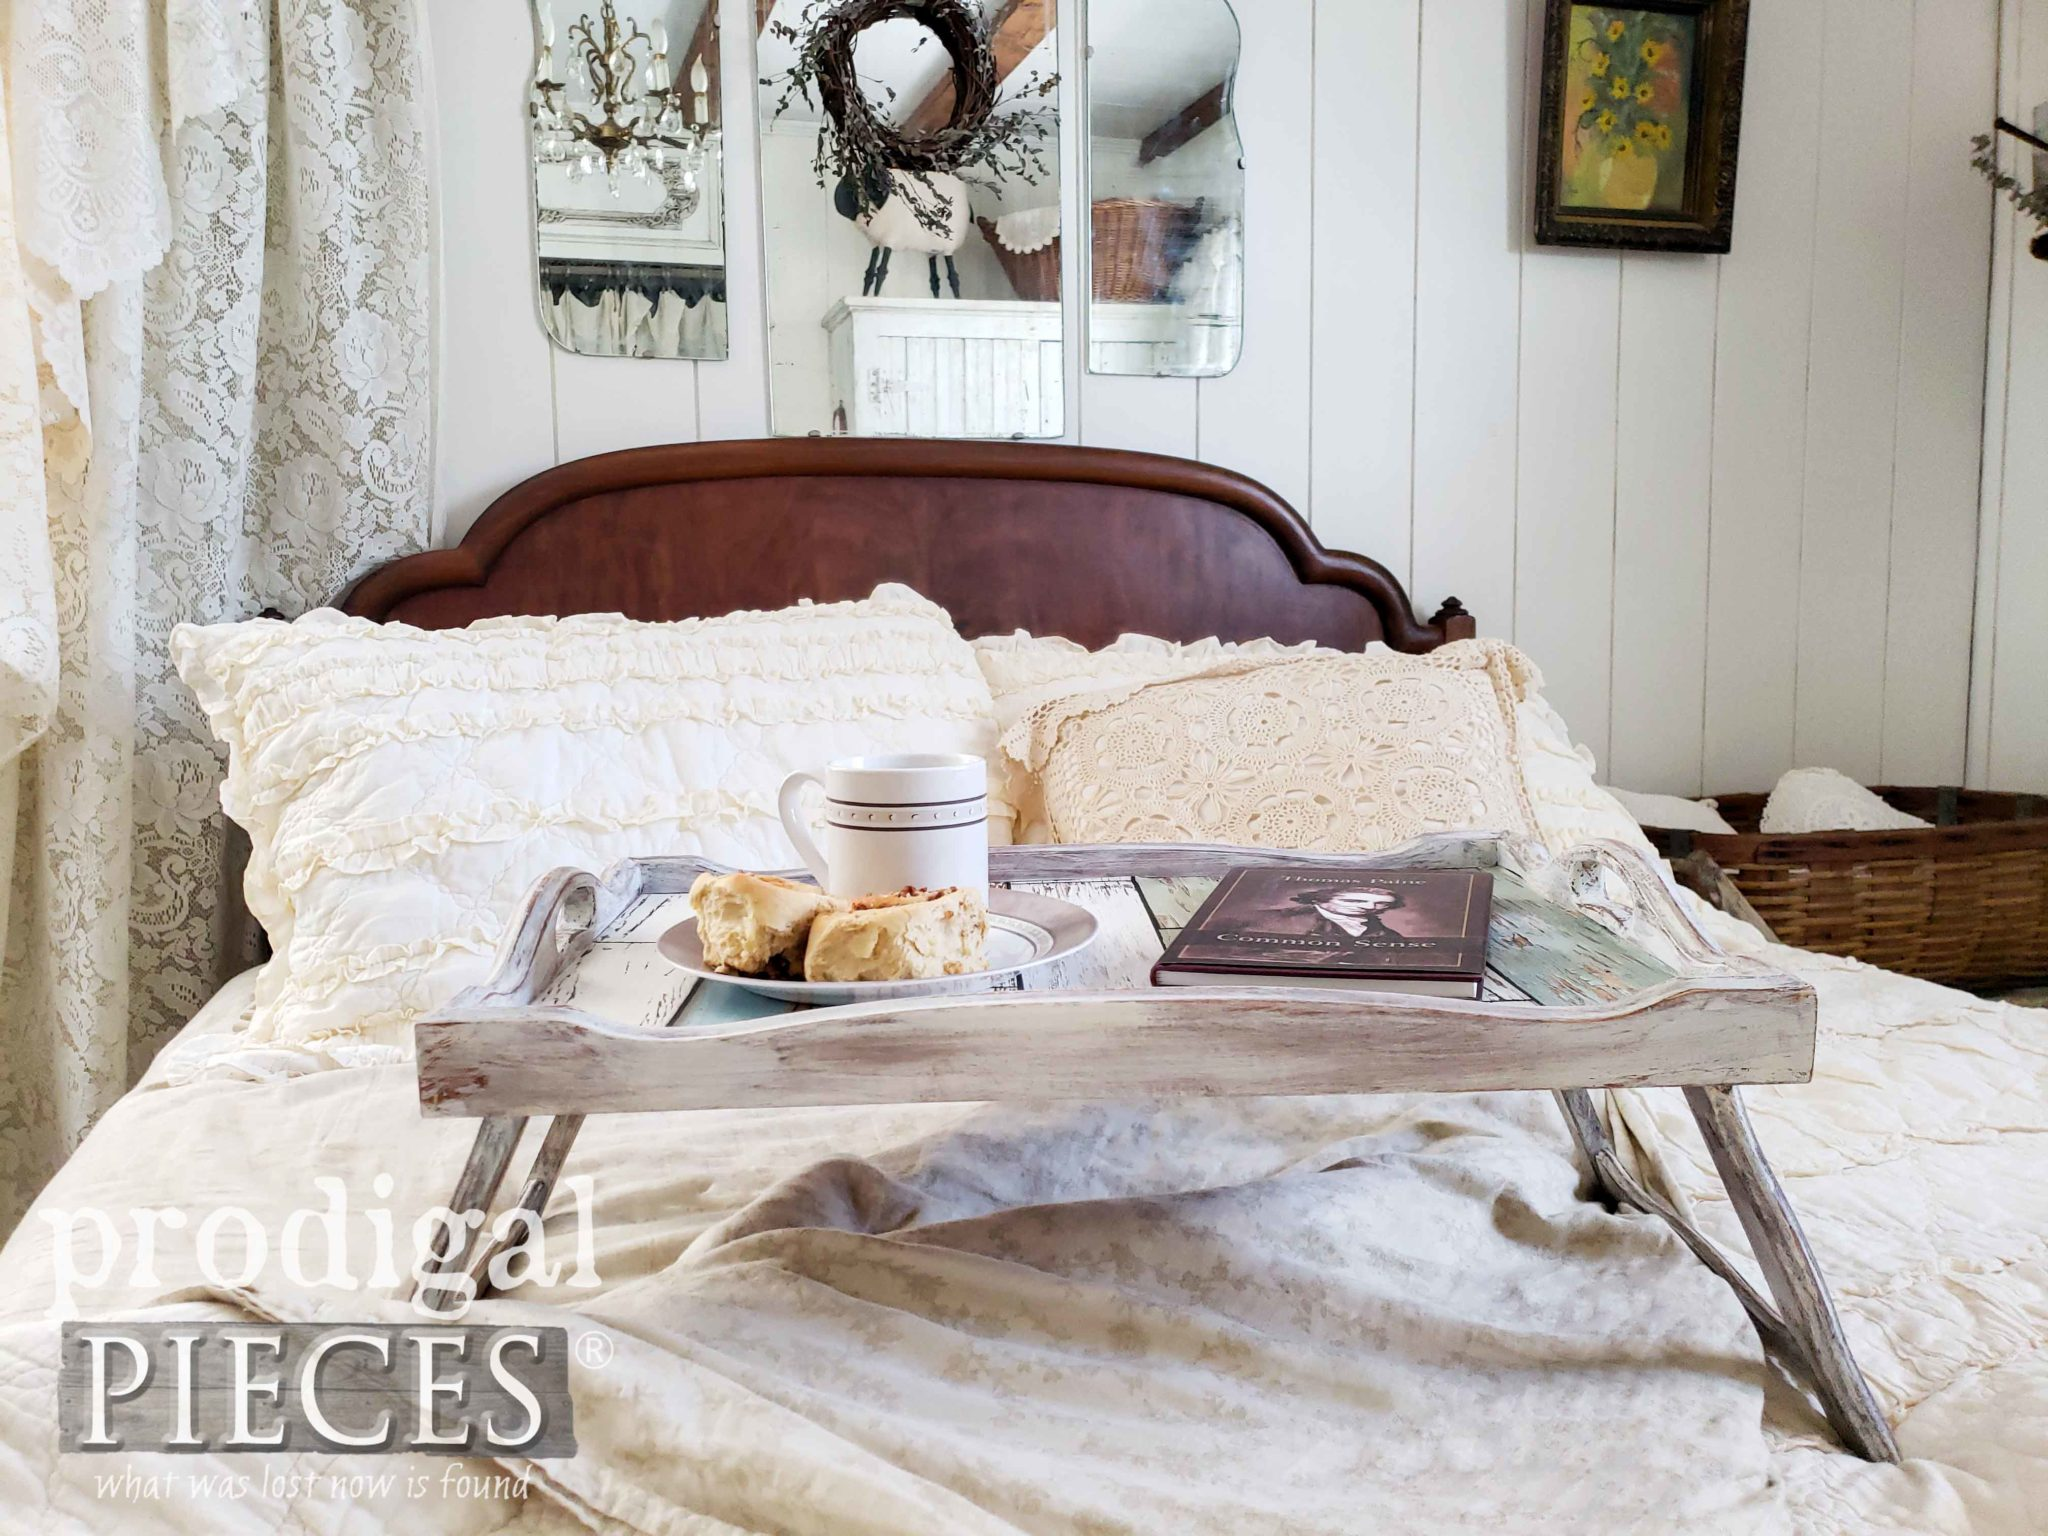 Vintage Farmhouse Bedroom Decor with DIY Vintage Bed Tray Makeover by Larissa of Prodigal Pieces | prodigalpieces.com #prodigalpieces #home #diy #farmhouse #homedecor #homedecorideas #shopping #vintage #handmade